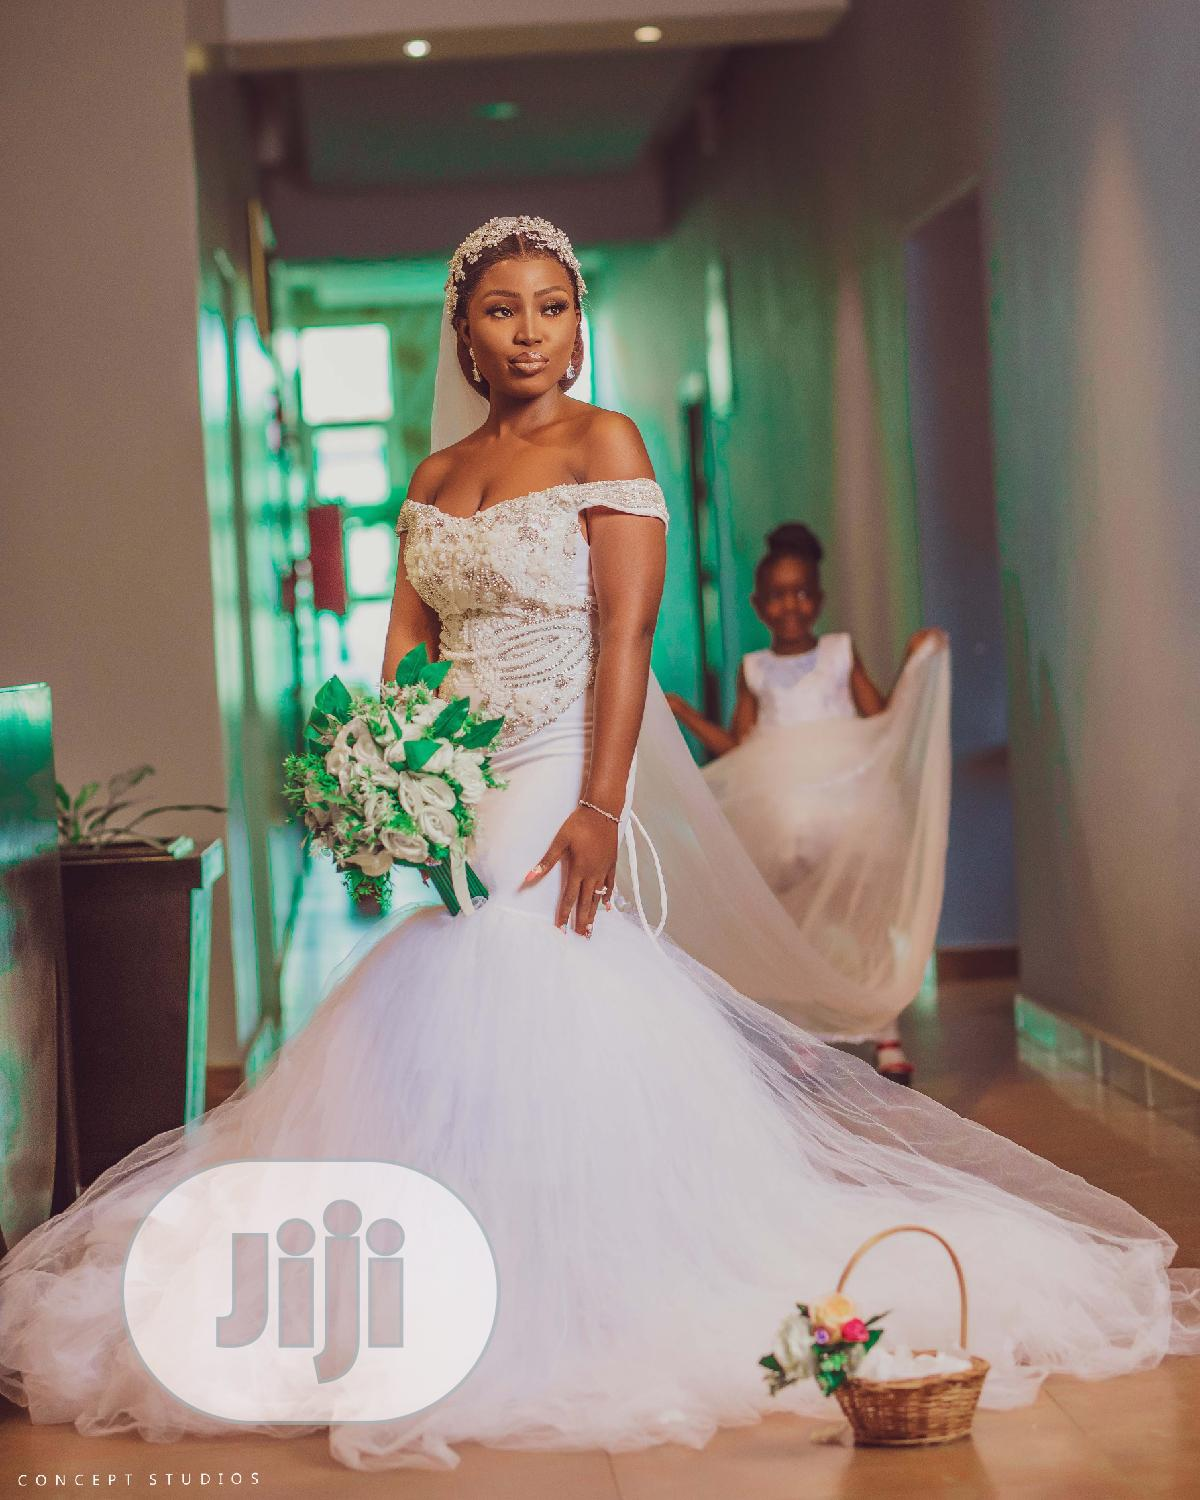 Beautiful Mermaid Wedding Dress And A Free Bouquet | Wedding Wear & Accessories for sale in Benin City, Edo State, Nigeria